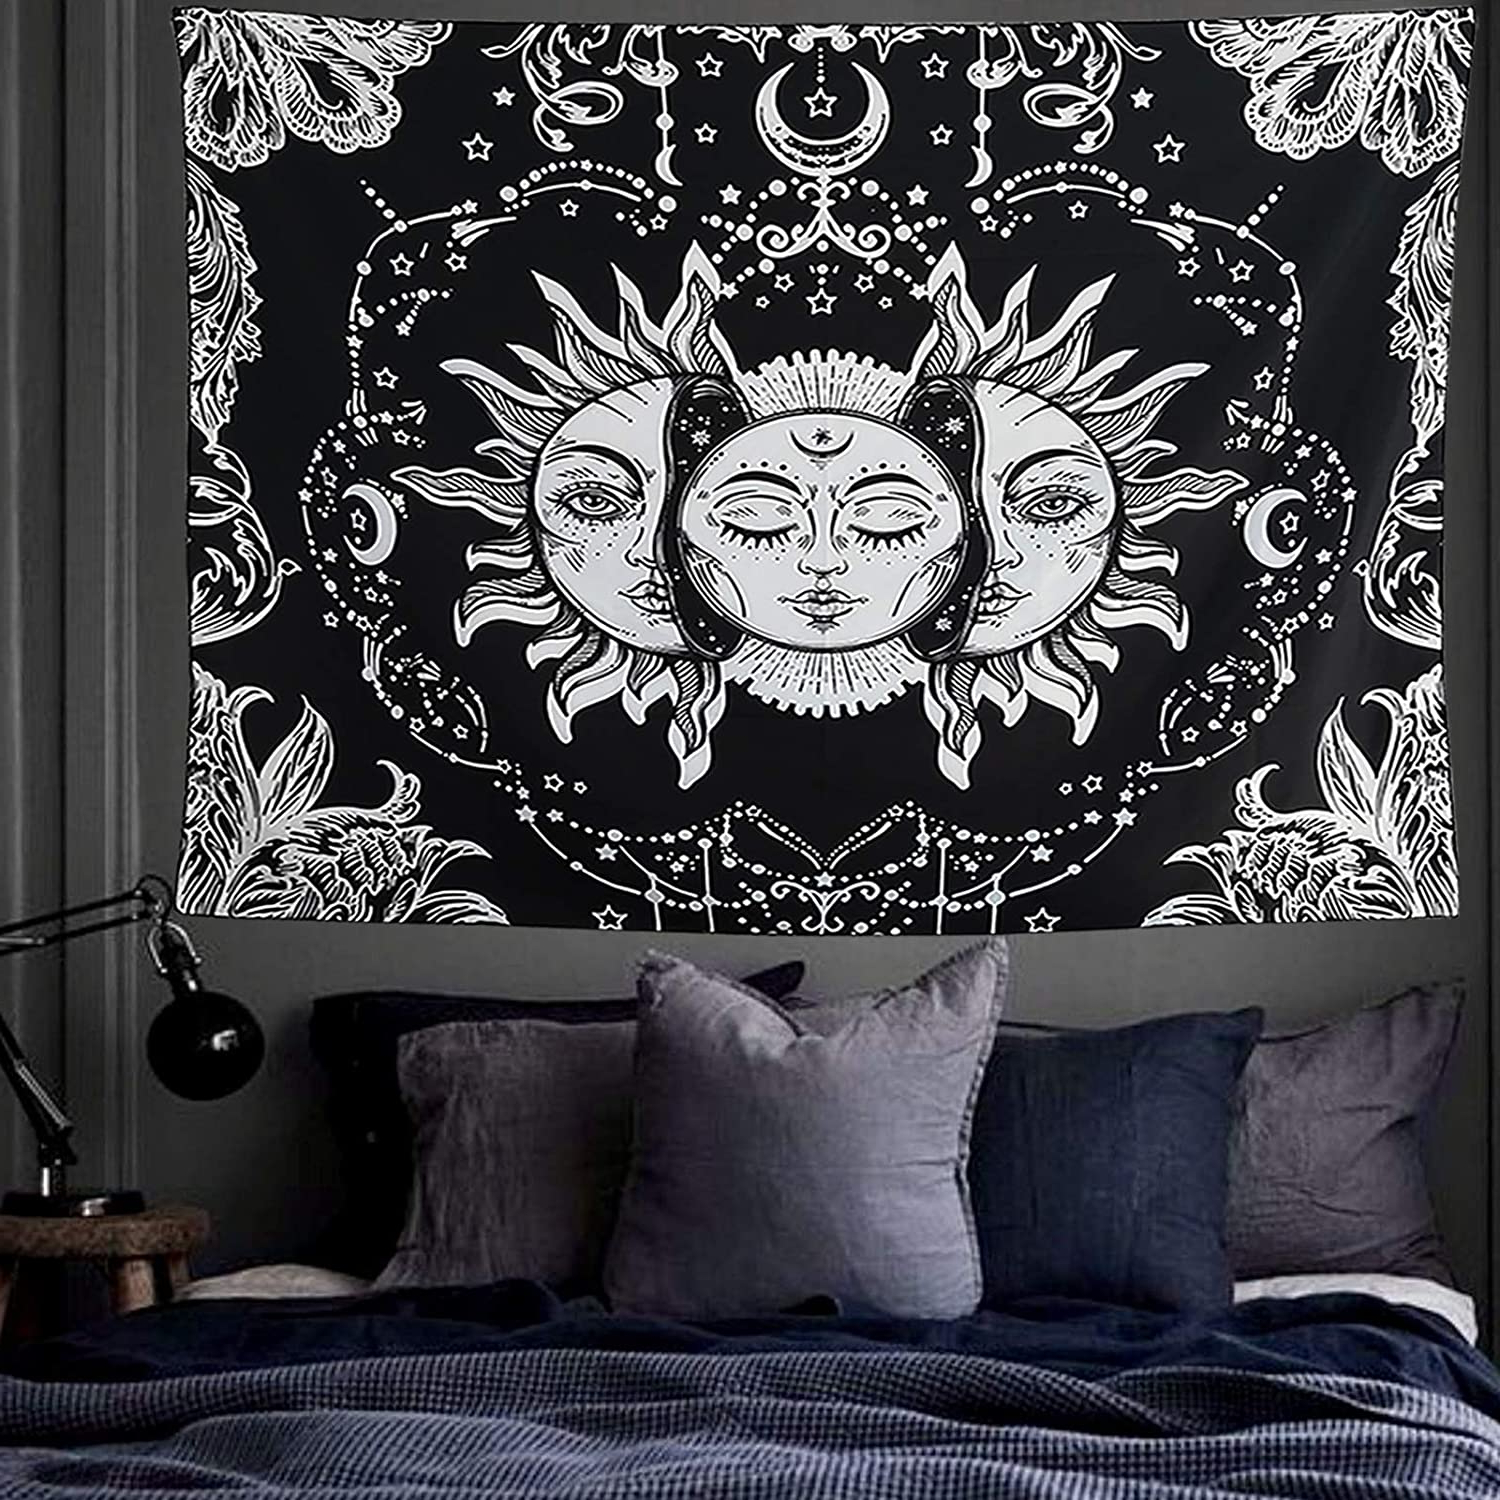 Blended Fabric Trust In The Lord Tapestries And Wall Hangings Regarding Recent Fairdew Wall Cloth Decor Tapestry For Living Room, Large Tapestry Wall Hanging For Bedroom, Sun And Moon Wall Blanket Decorations For Bedroom Trippy (View 15 of 20)